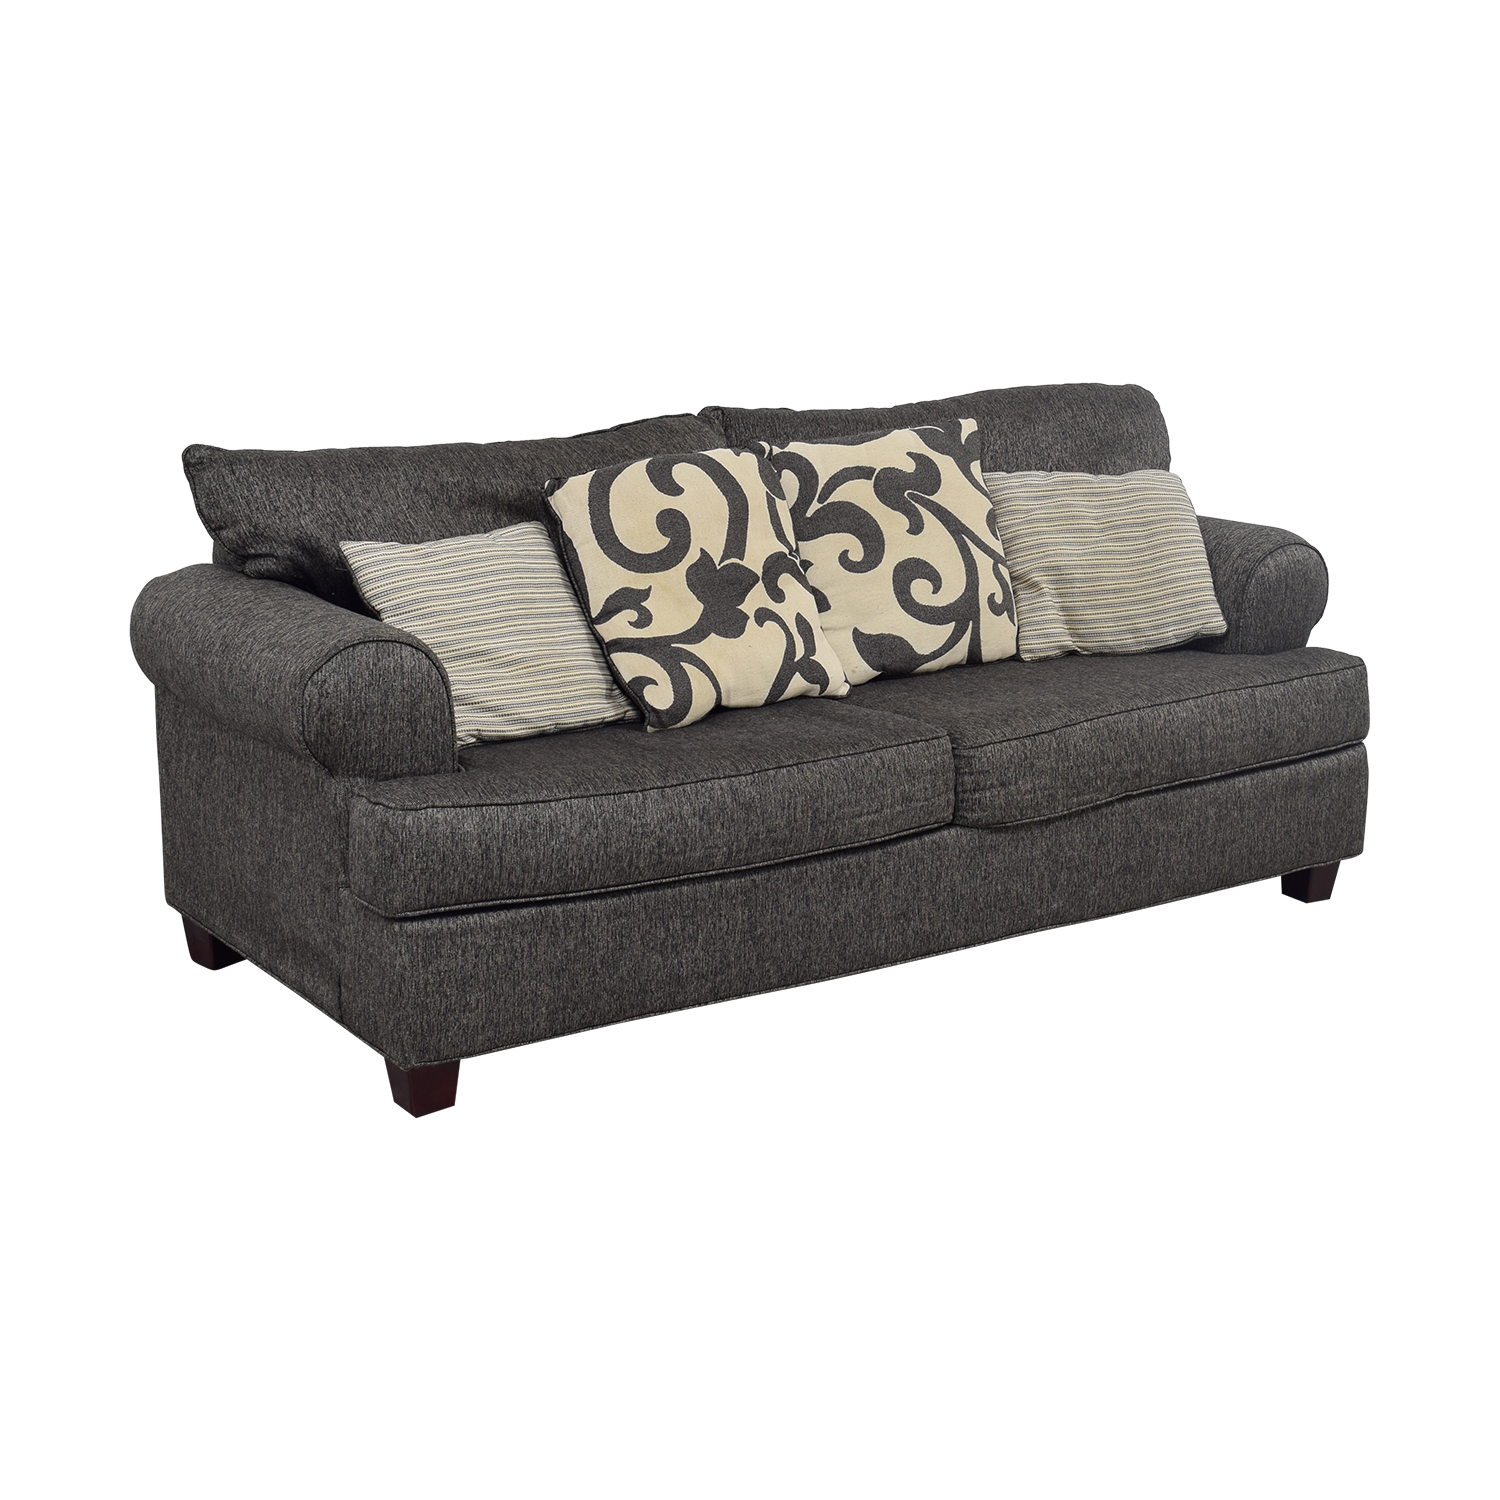 Bob's Furniture Bob's Furniture Big Grey Two-Seater Sofa dimensions